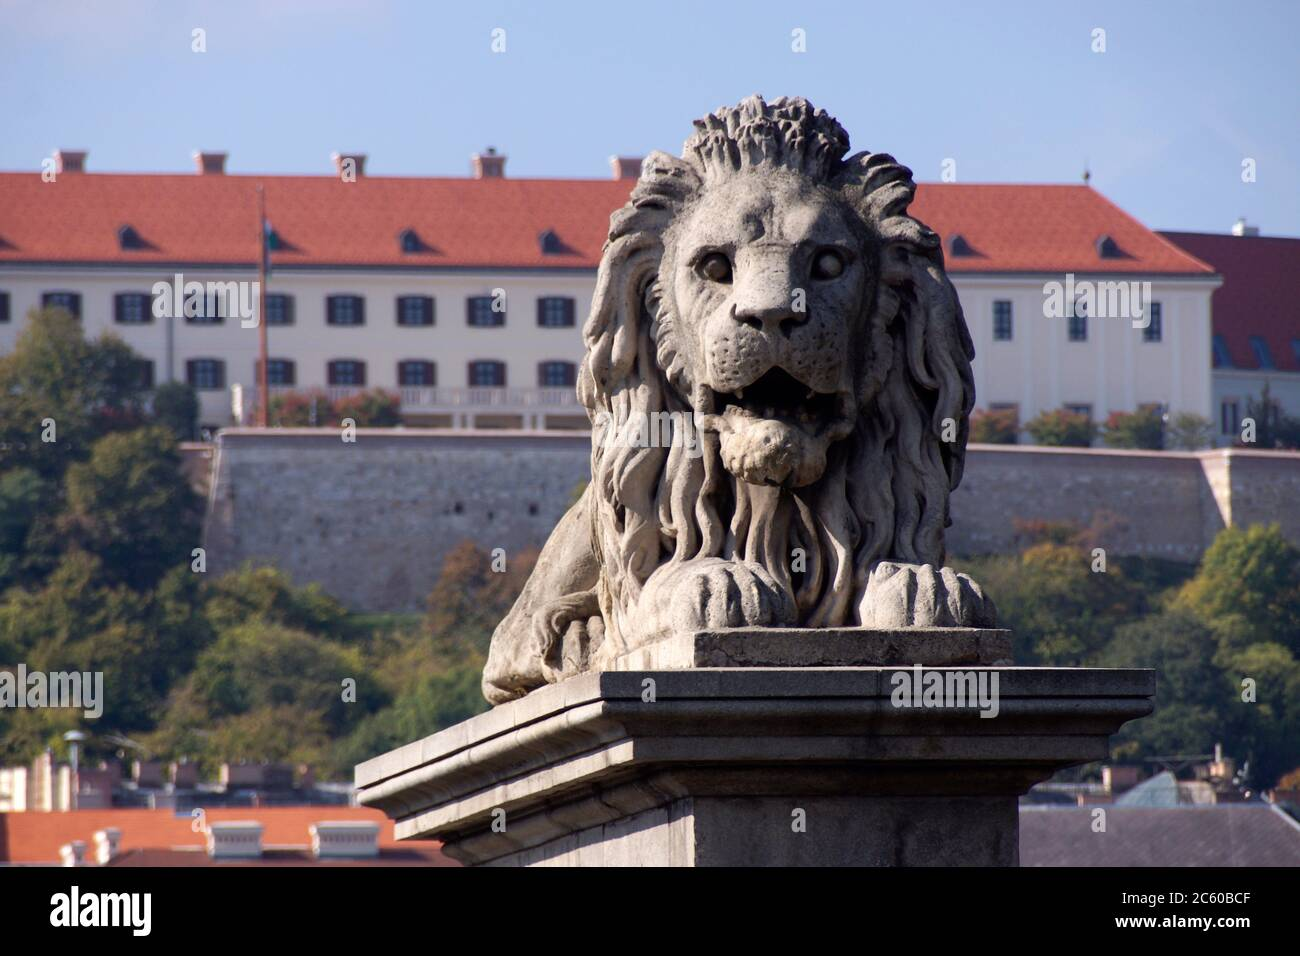 Budapest (Hungary). One of the lions from the Chain Bridge in the city of Budapest. Stock Photo